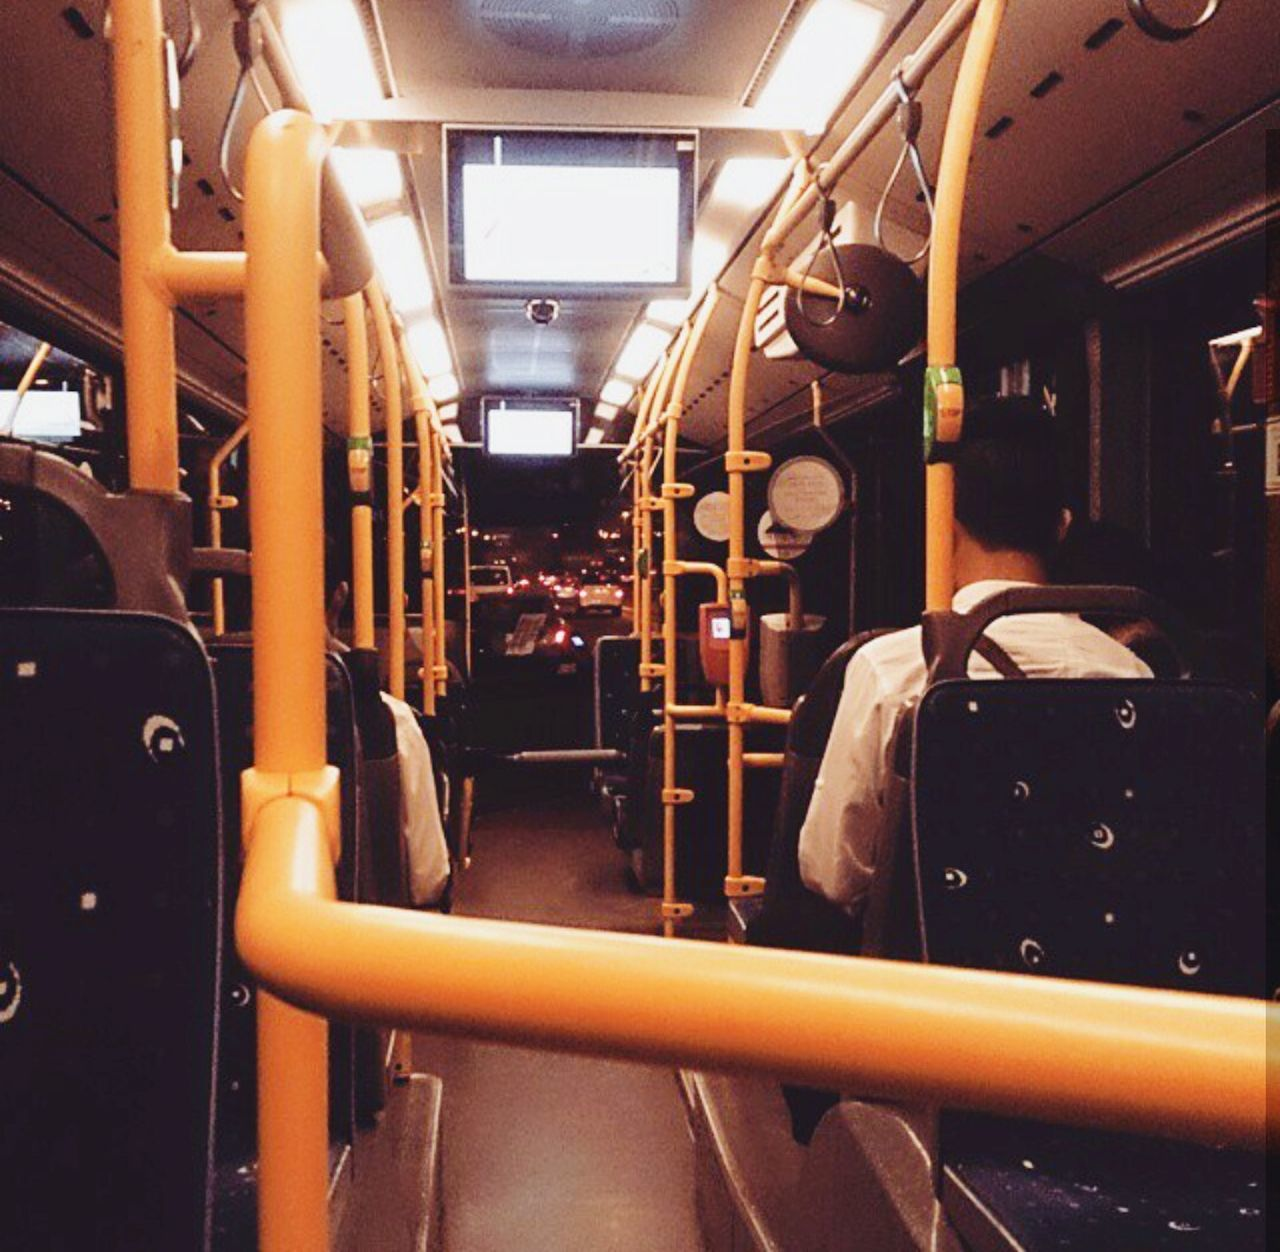 vehicle interior, train - vehicle, transportation, public transportation, vehicle seat, train interior, rail transportation, mode of transport, passenger train, subway train, indoors, no people, illuminated, commuter train, day